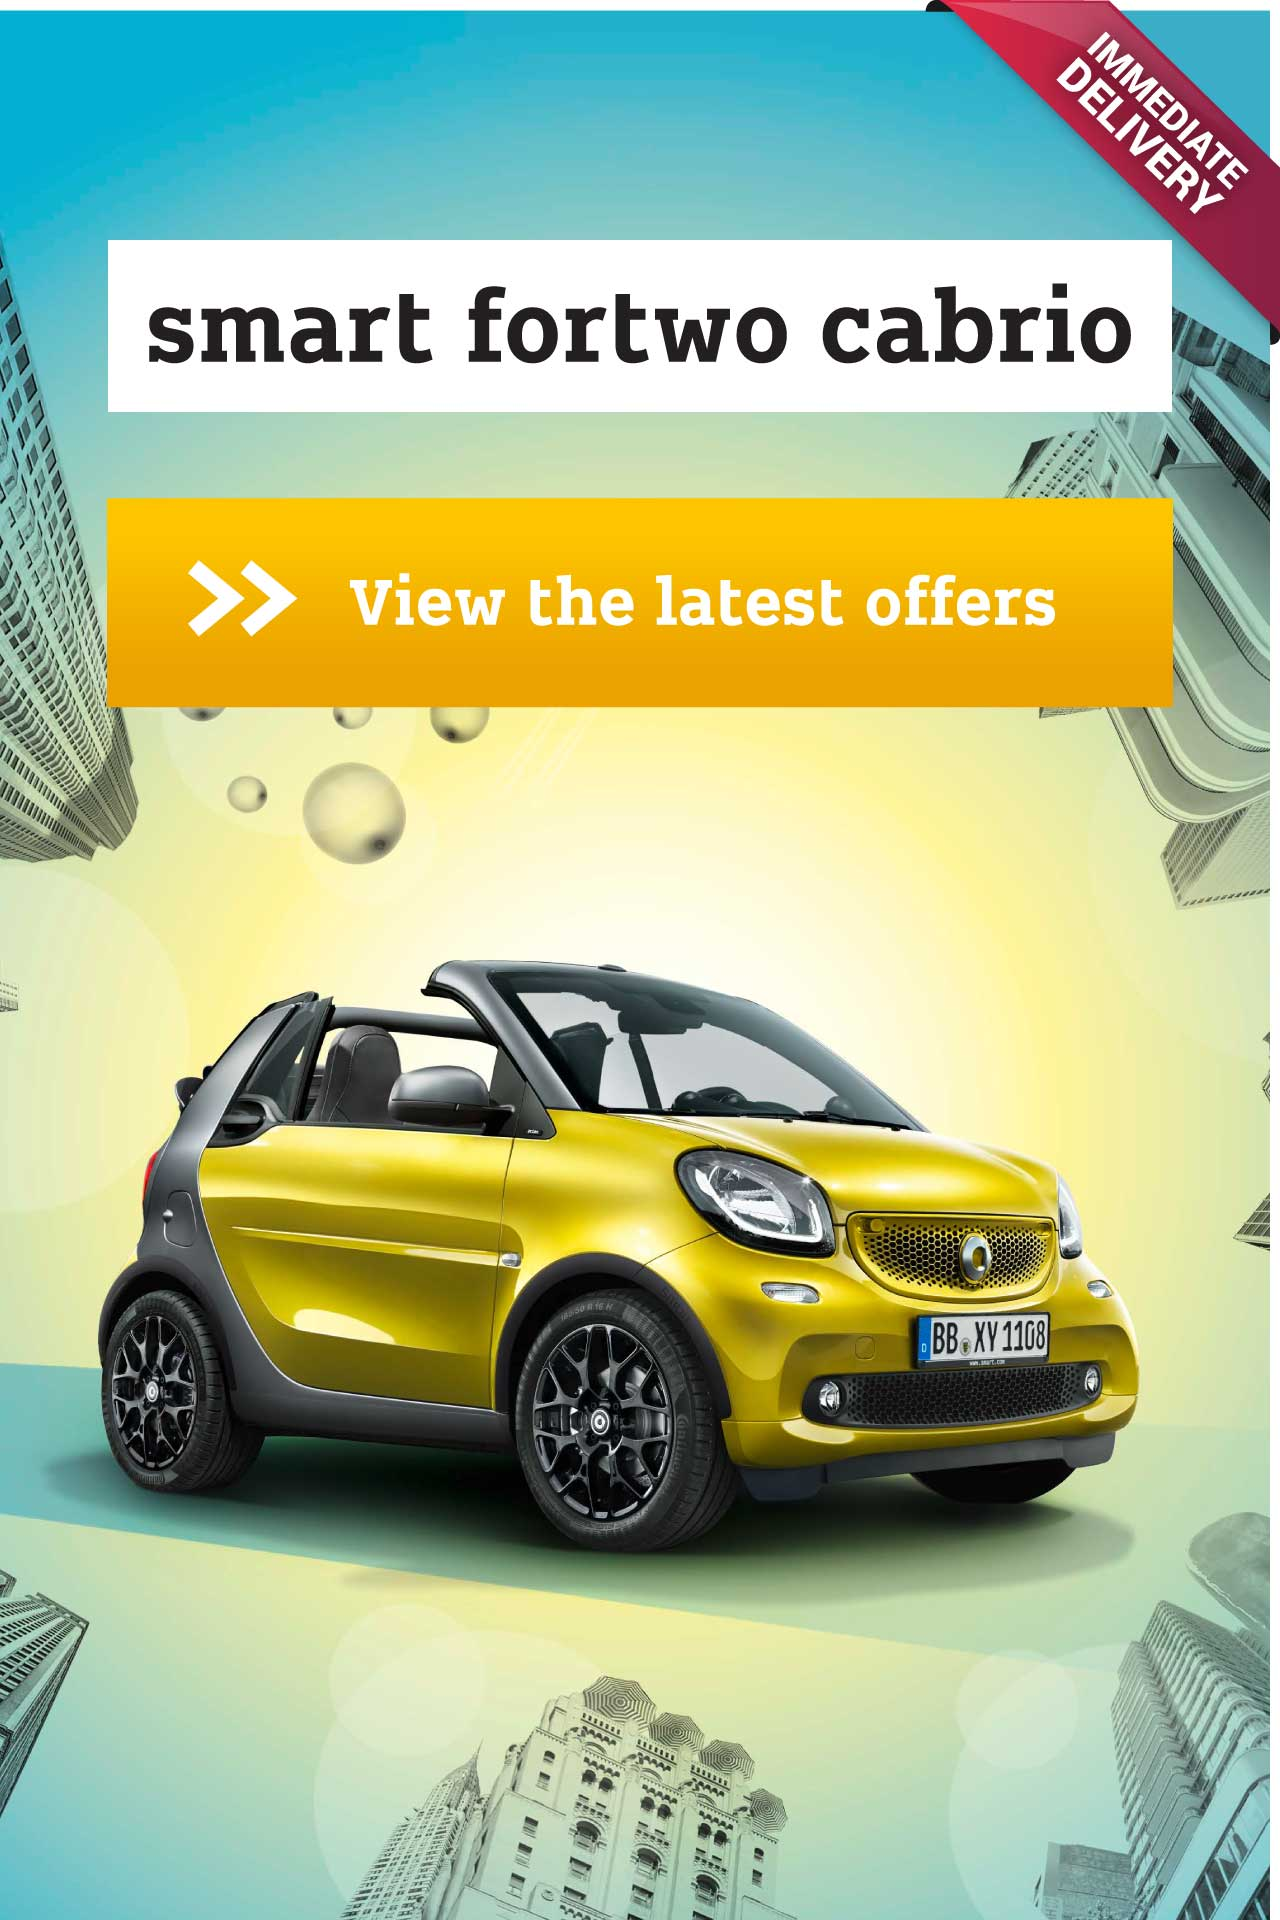 smart for two cabrio offer BB 170918